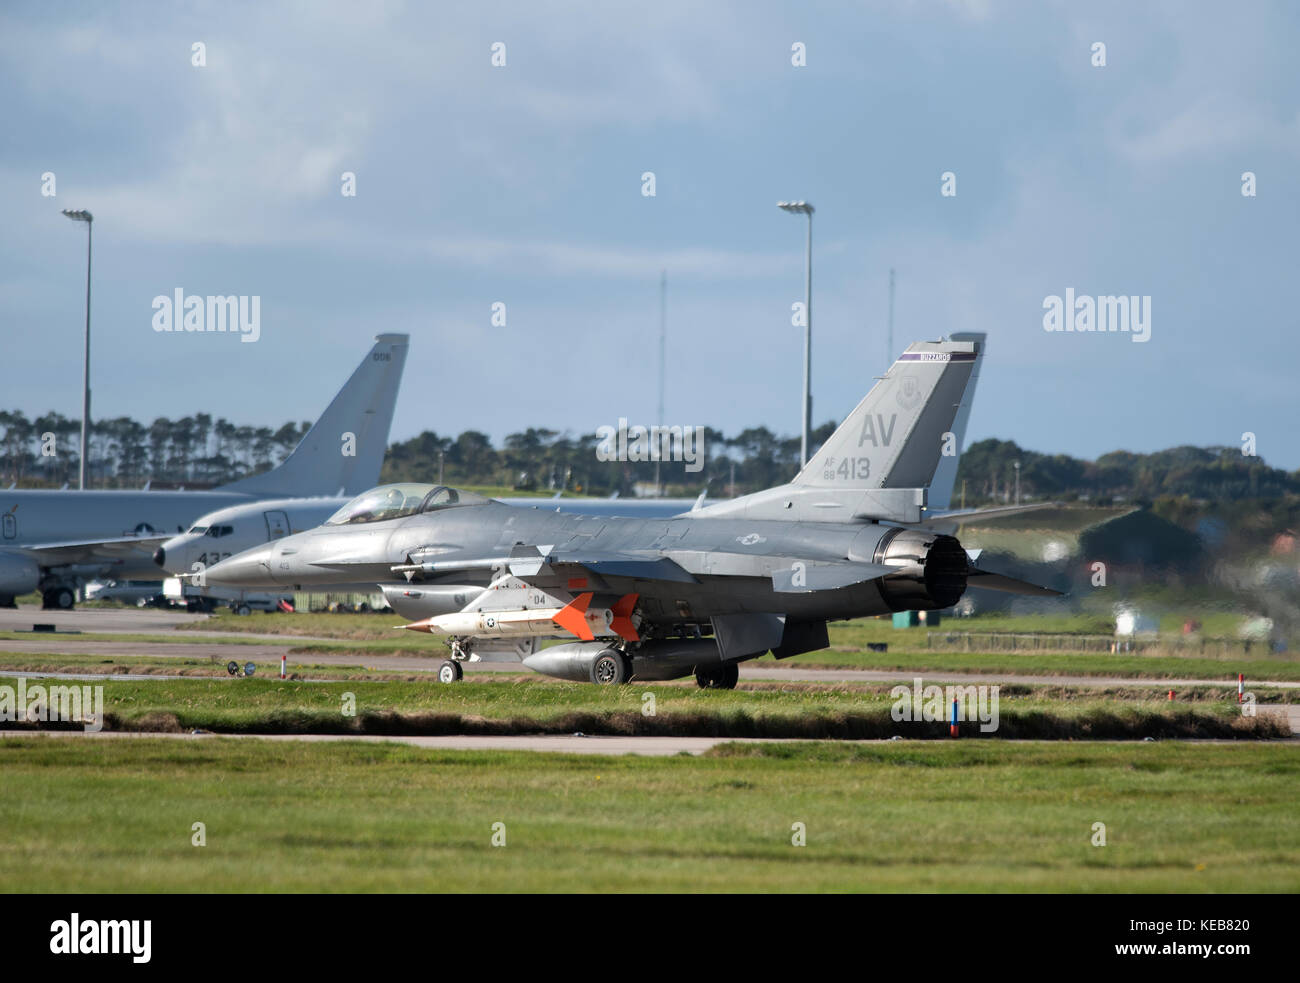 A USAF F16 fighter jet on the 2017 joint Warrio exercise preparing to depart RAF Lossiemouth, Morayshire Scotland. - Stock Image